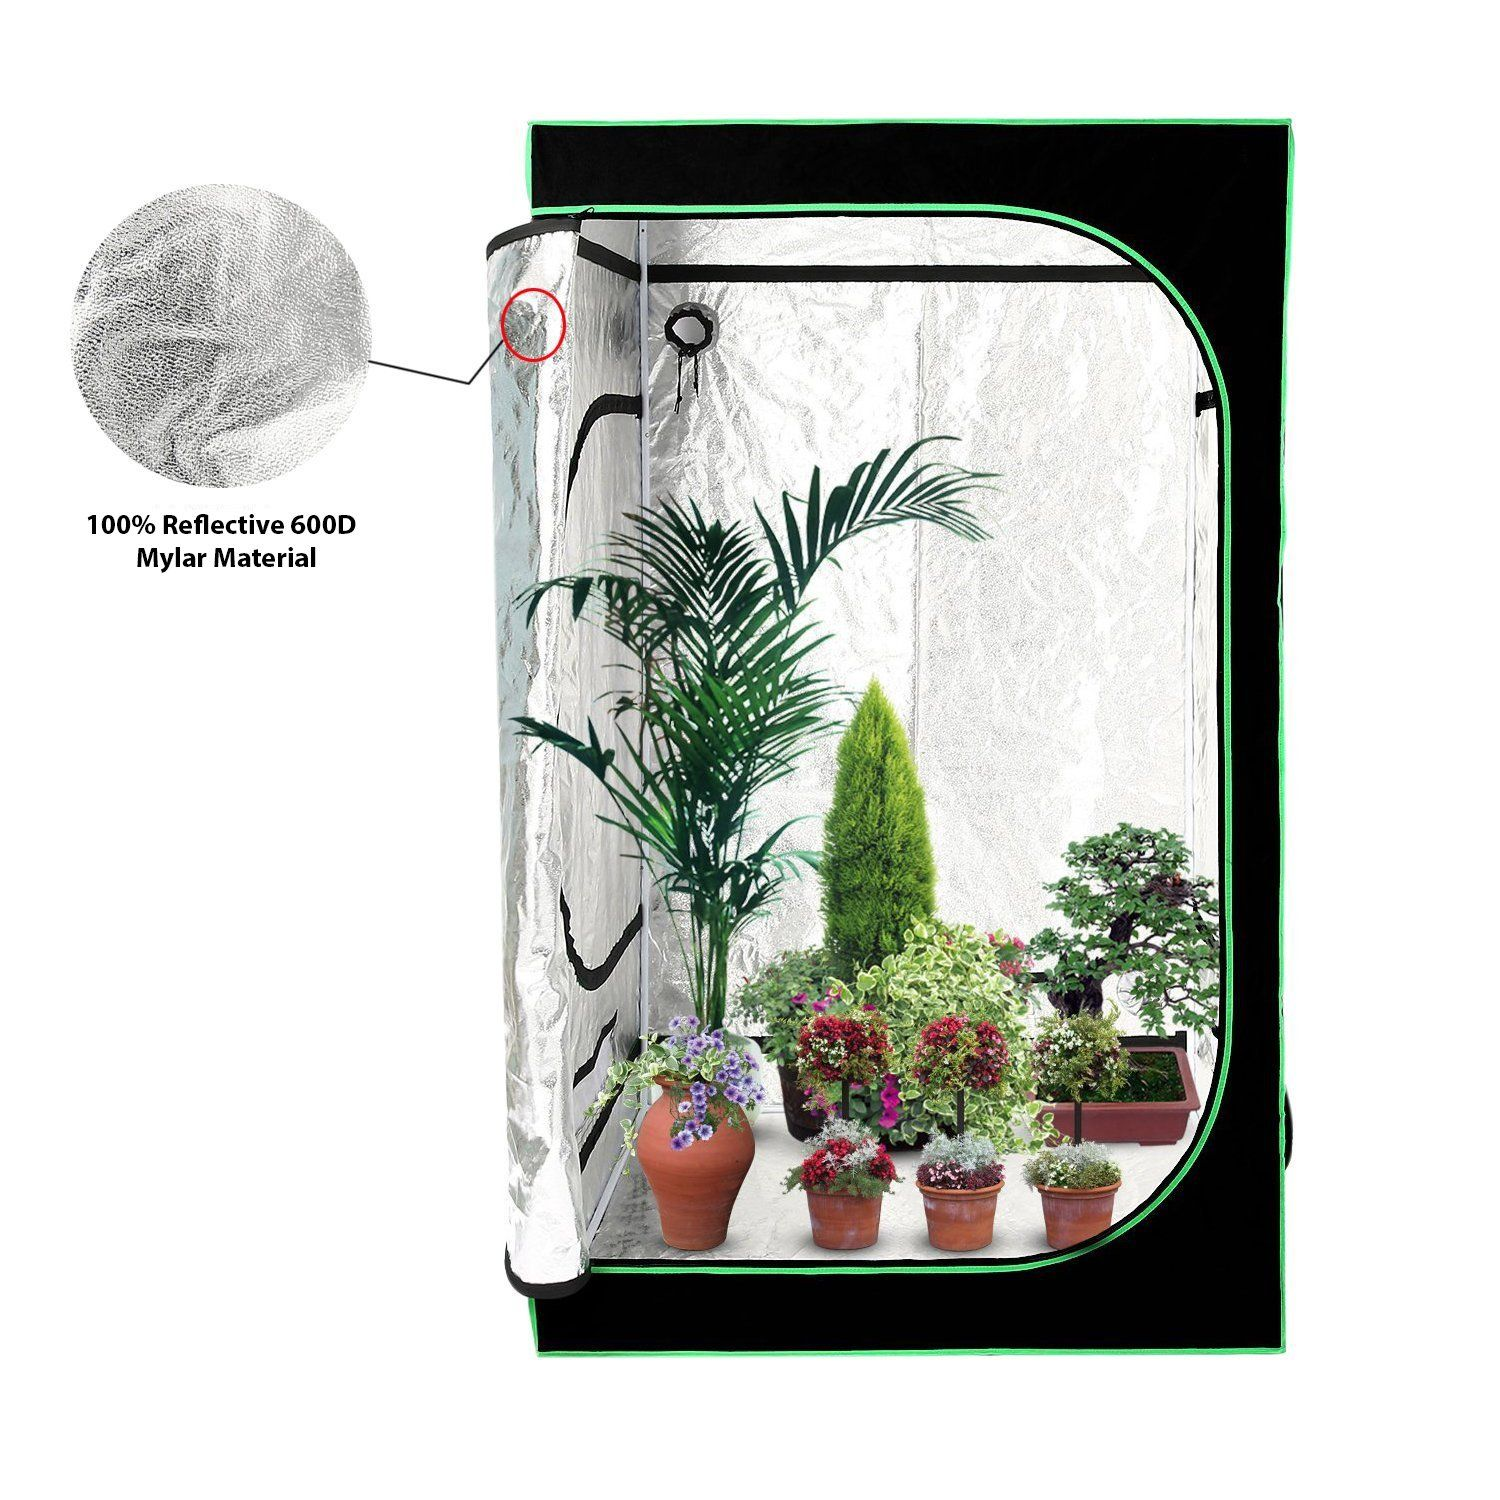 Sungroom Grow Tent Room Complete Kit Hydroponic Growing 400 x 300